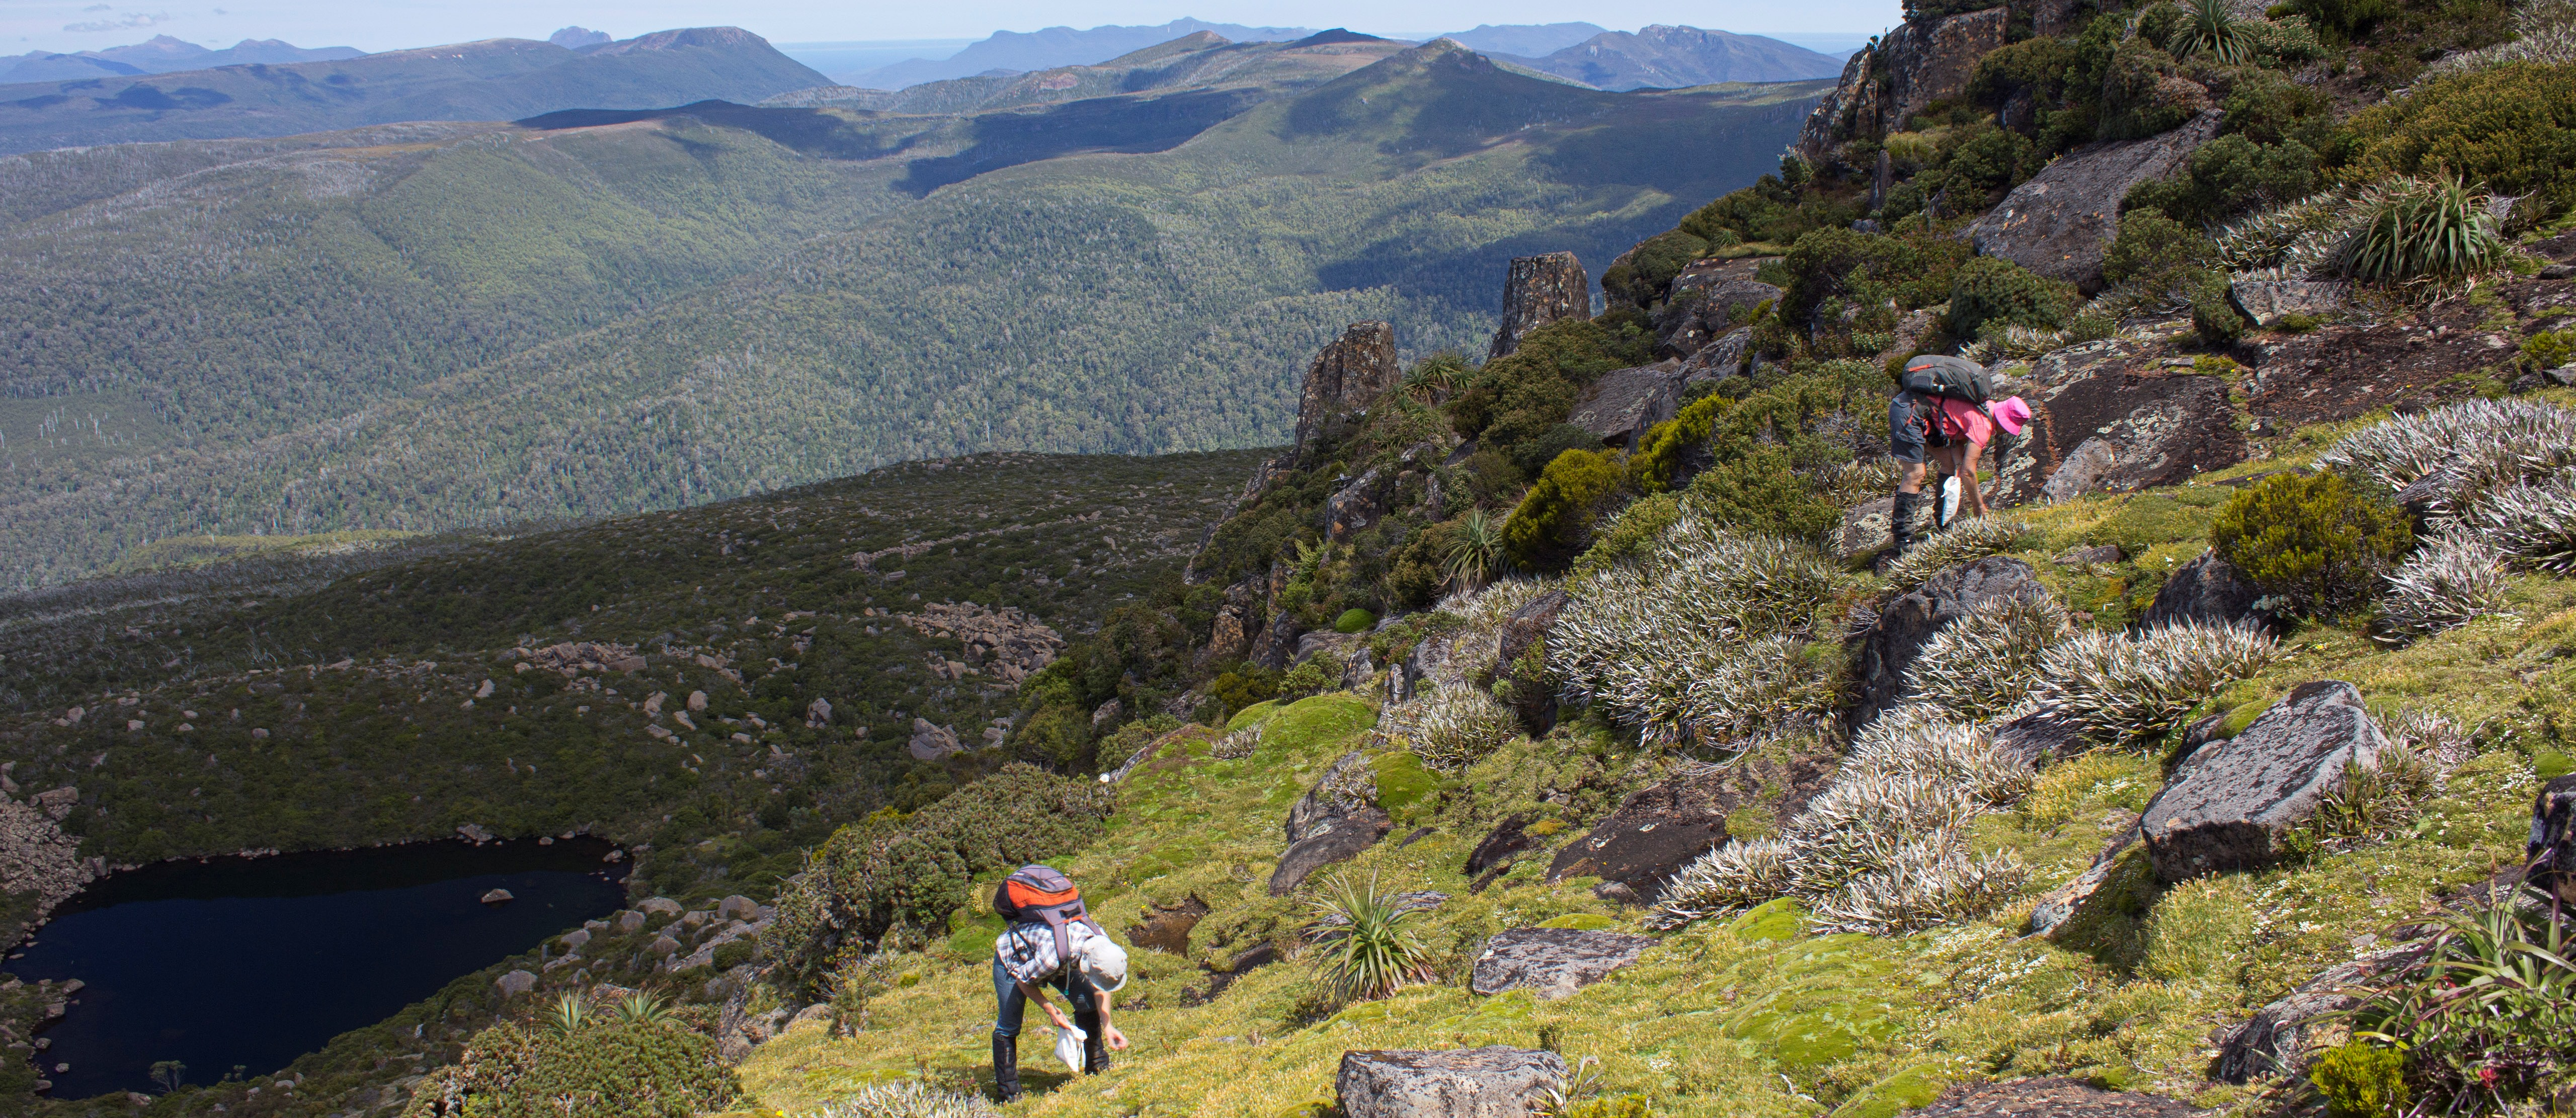 image of person Collecting seed and researching activities in the central Tasmanian highlands. expansive mountain views behind